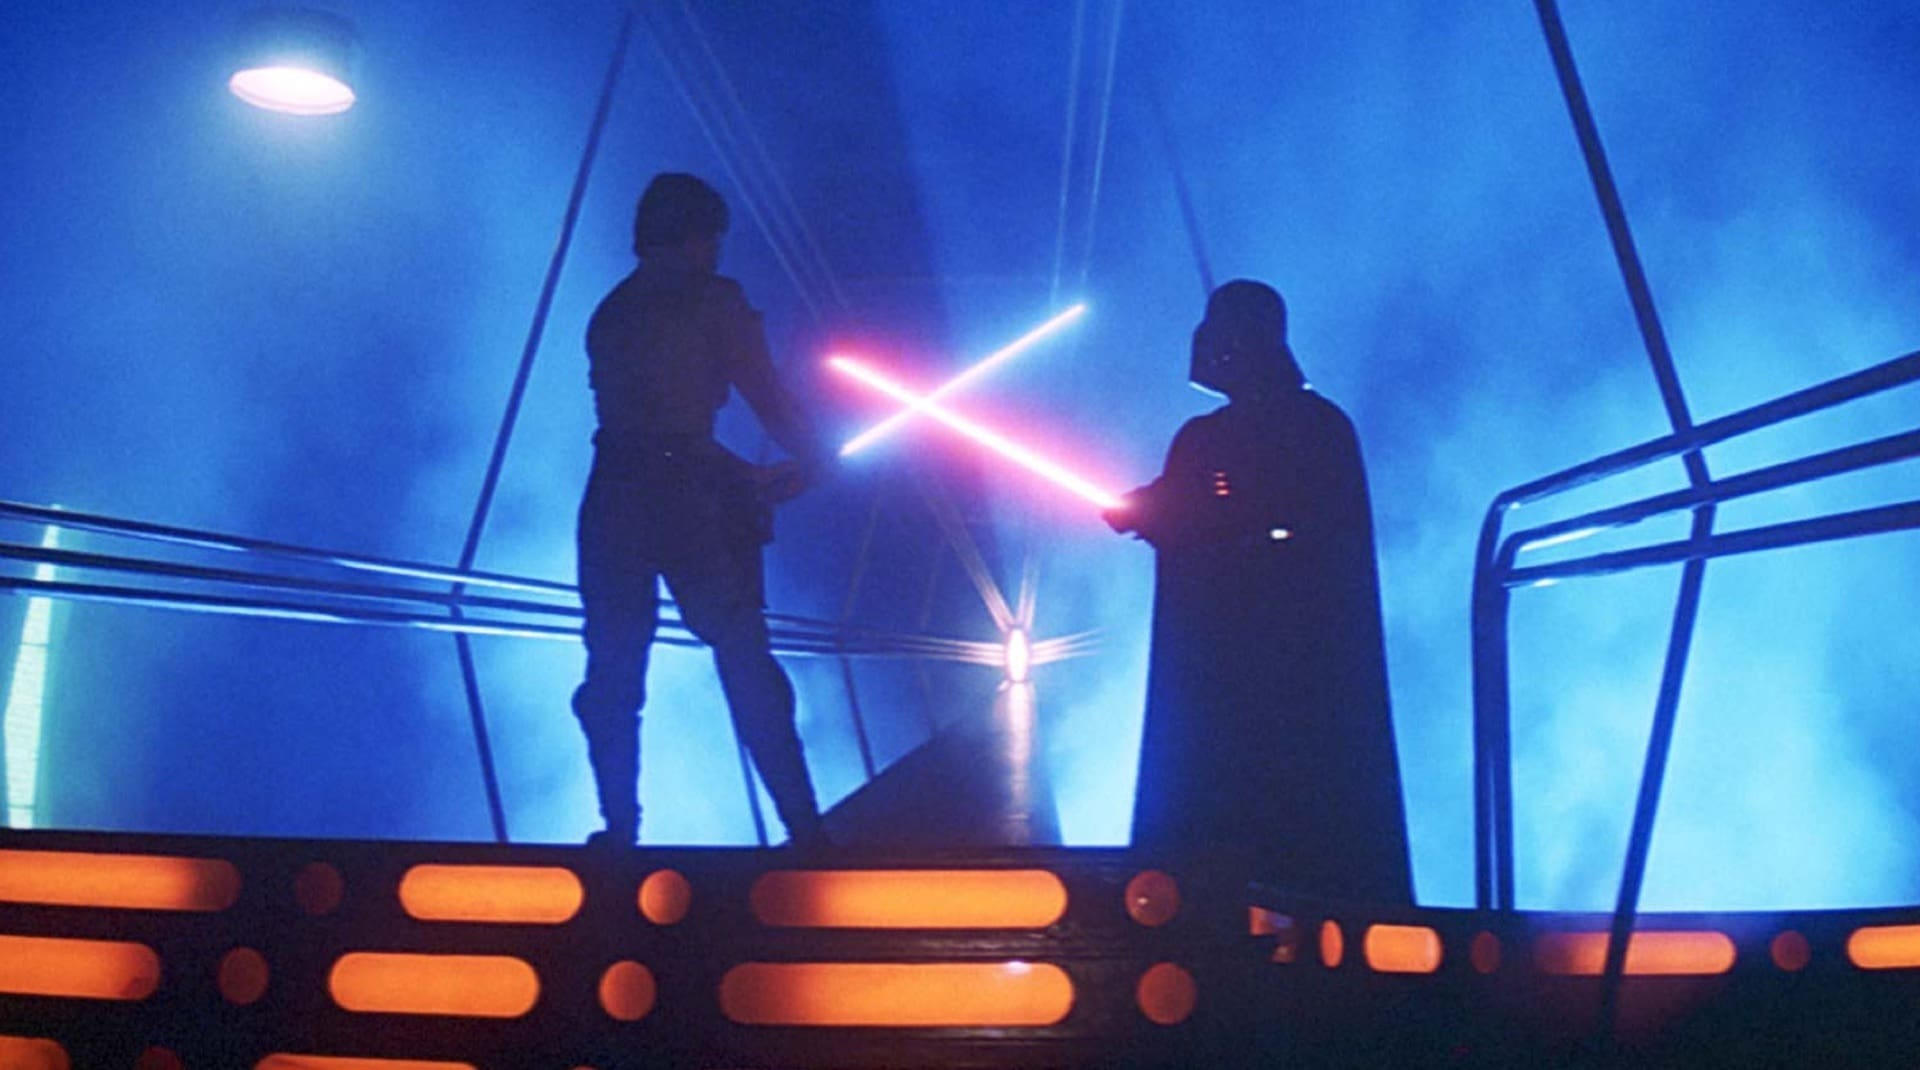 A selection of images from the Star Wars Saga